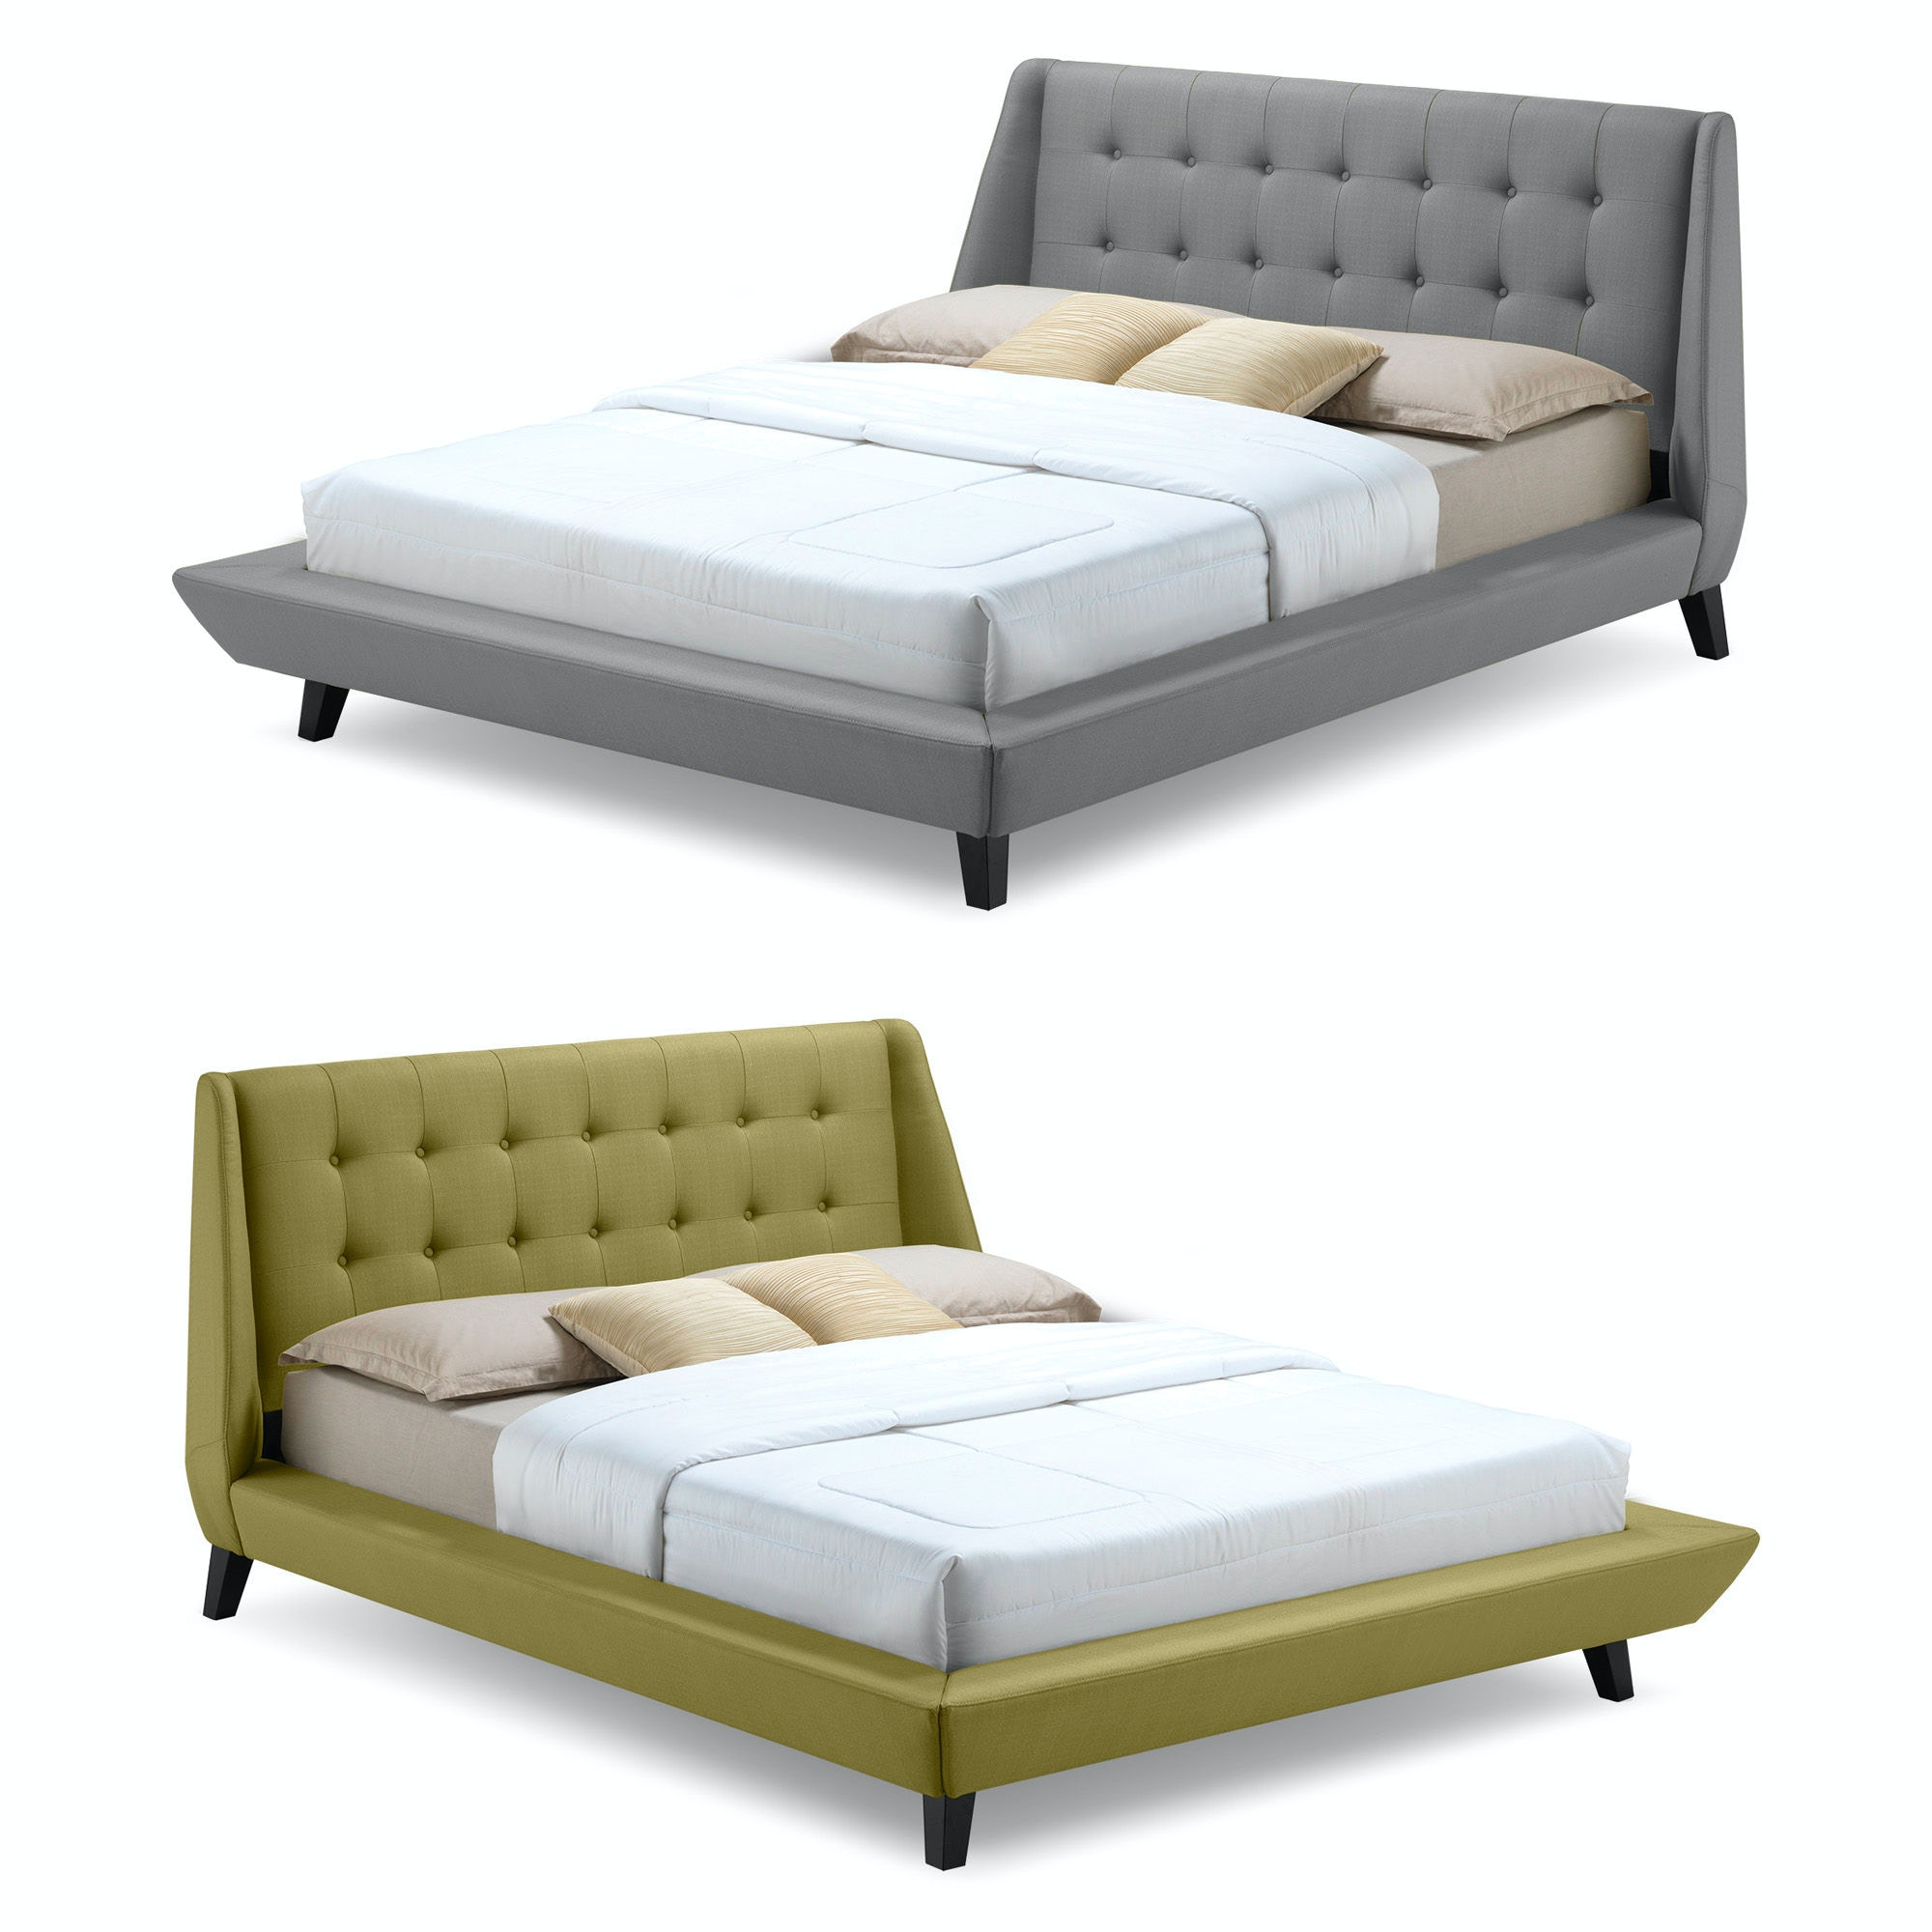 ... Fashion Bed Group Prelude Complete Platform Bed With Button Tuft  Headboard And Upholstered Exterior,